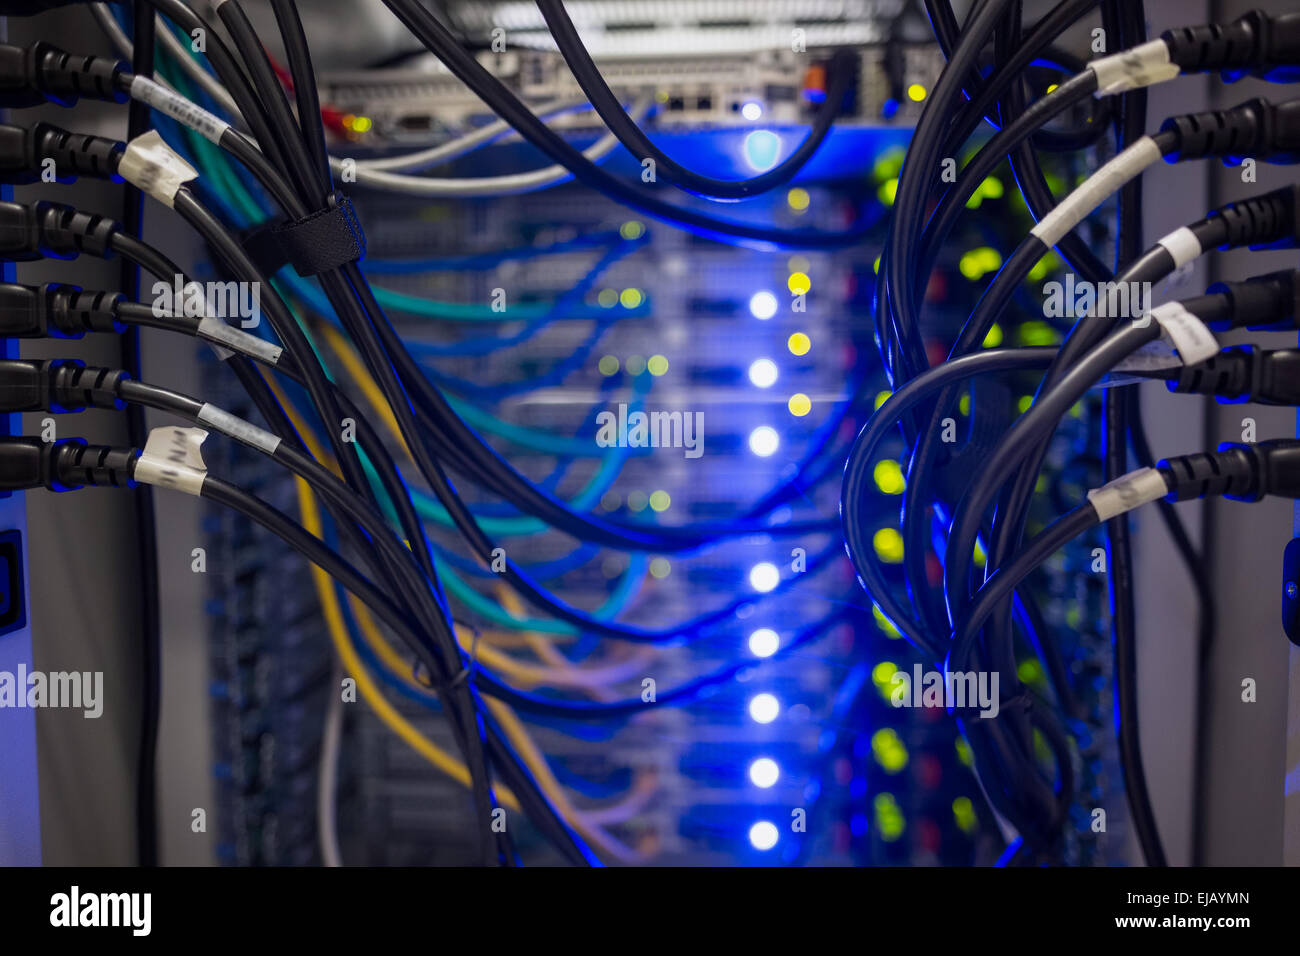 hight resolution of interior of server with wires blue stock image